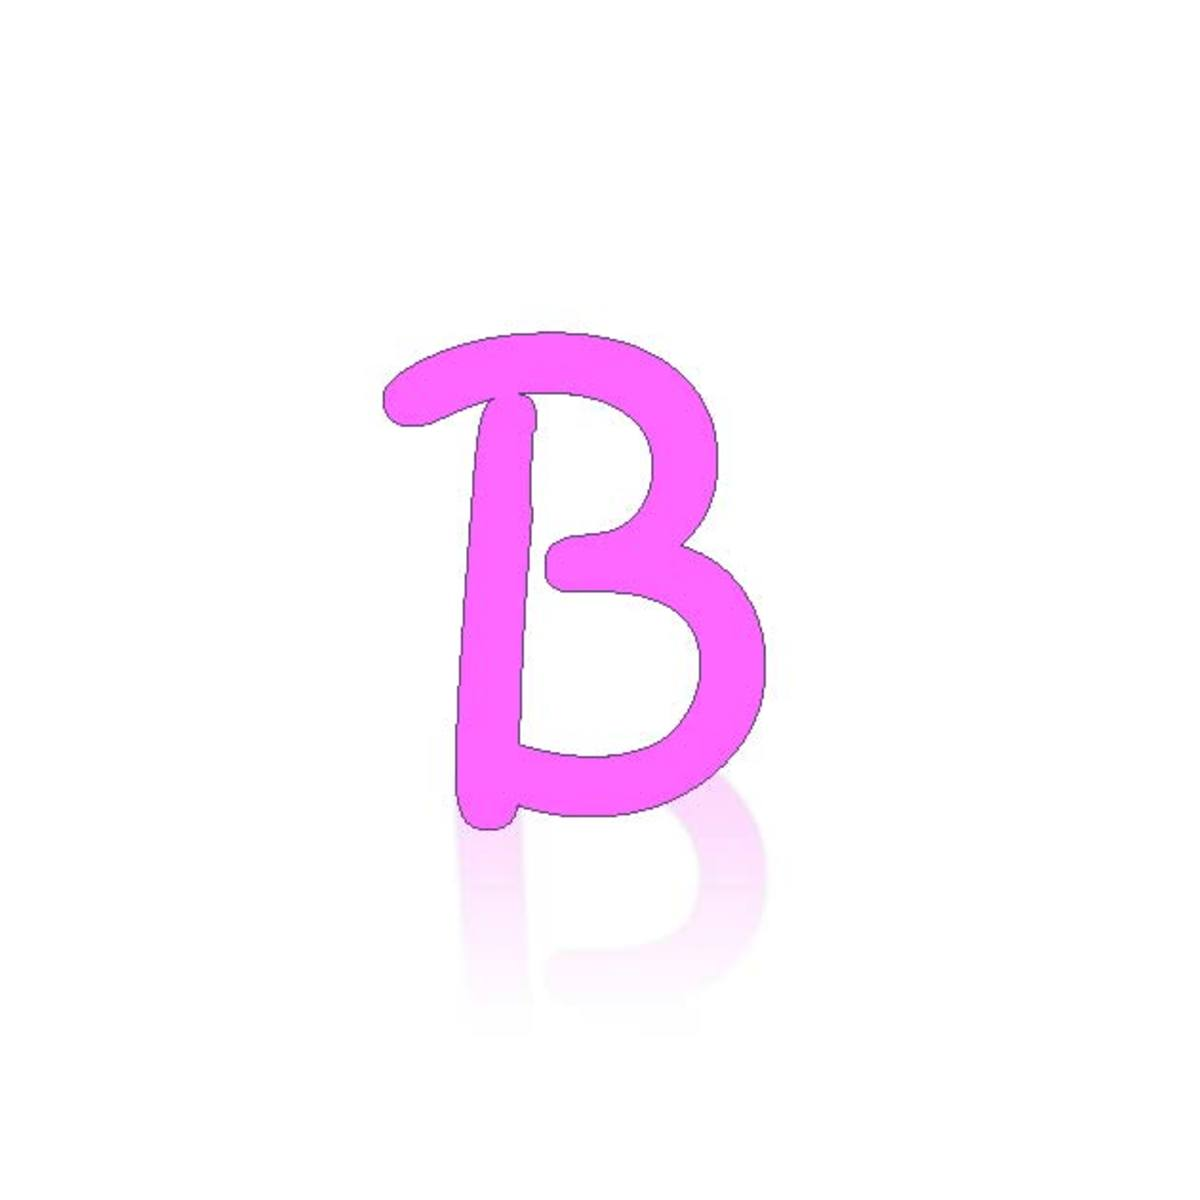 Acrostic Name Poems for Girls Names Starting with B